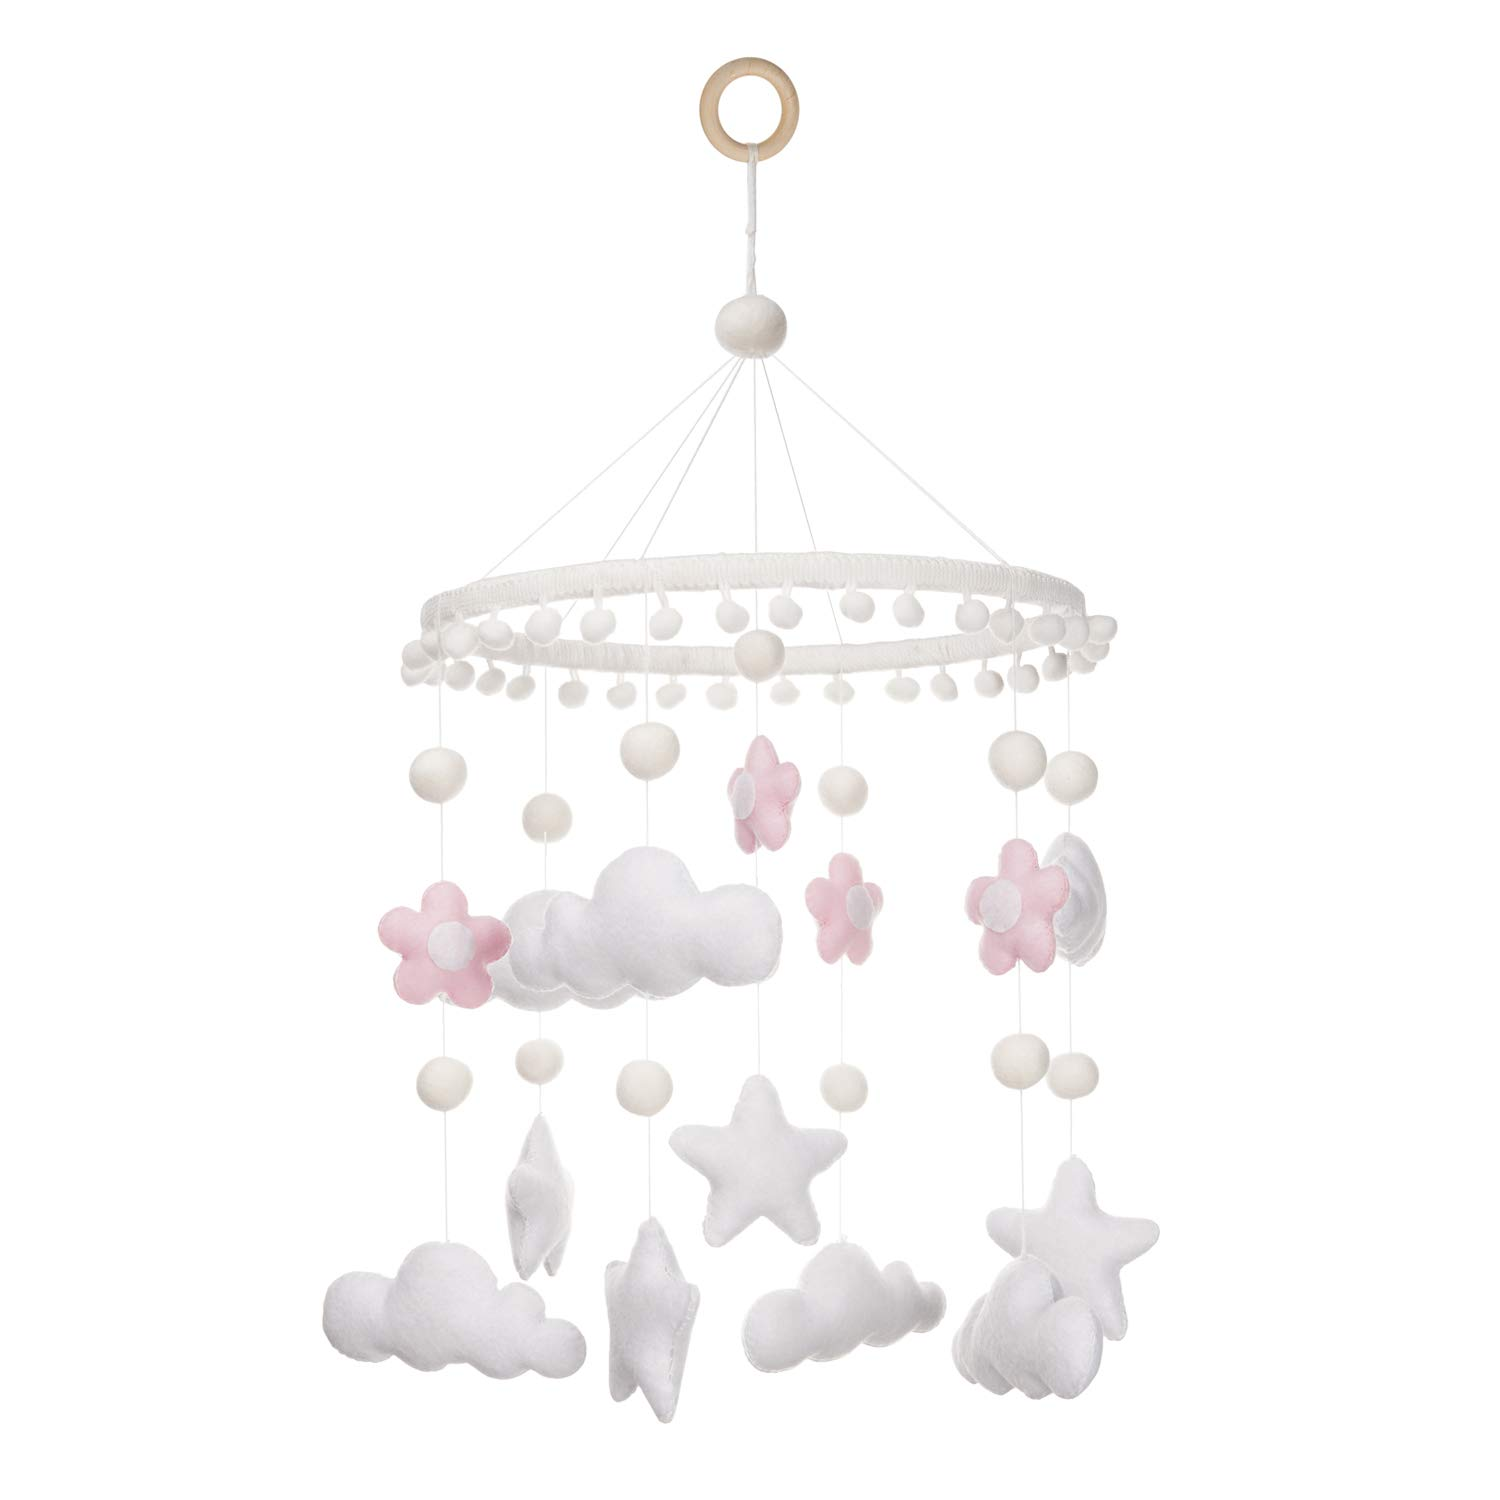 Baby Mobile for Crib Girl - Clouds, Stars and Flowers for Nursery Decor Custom Made Baby Shower for Kids Gift